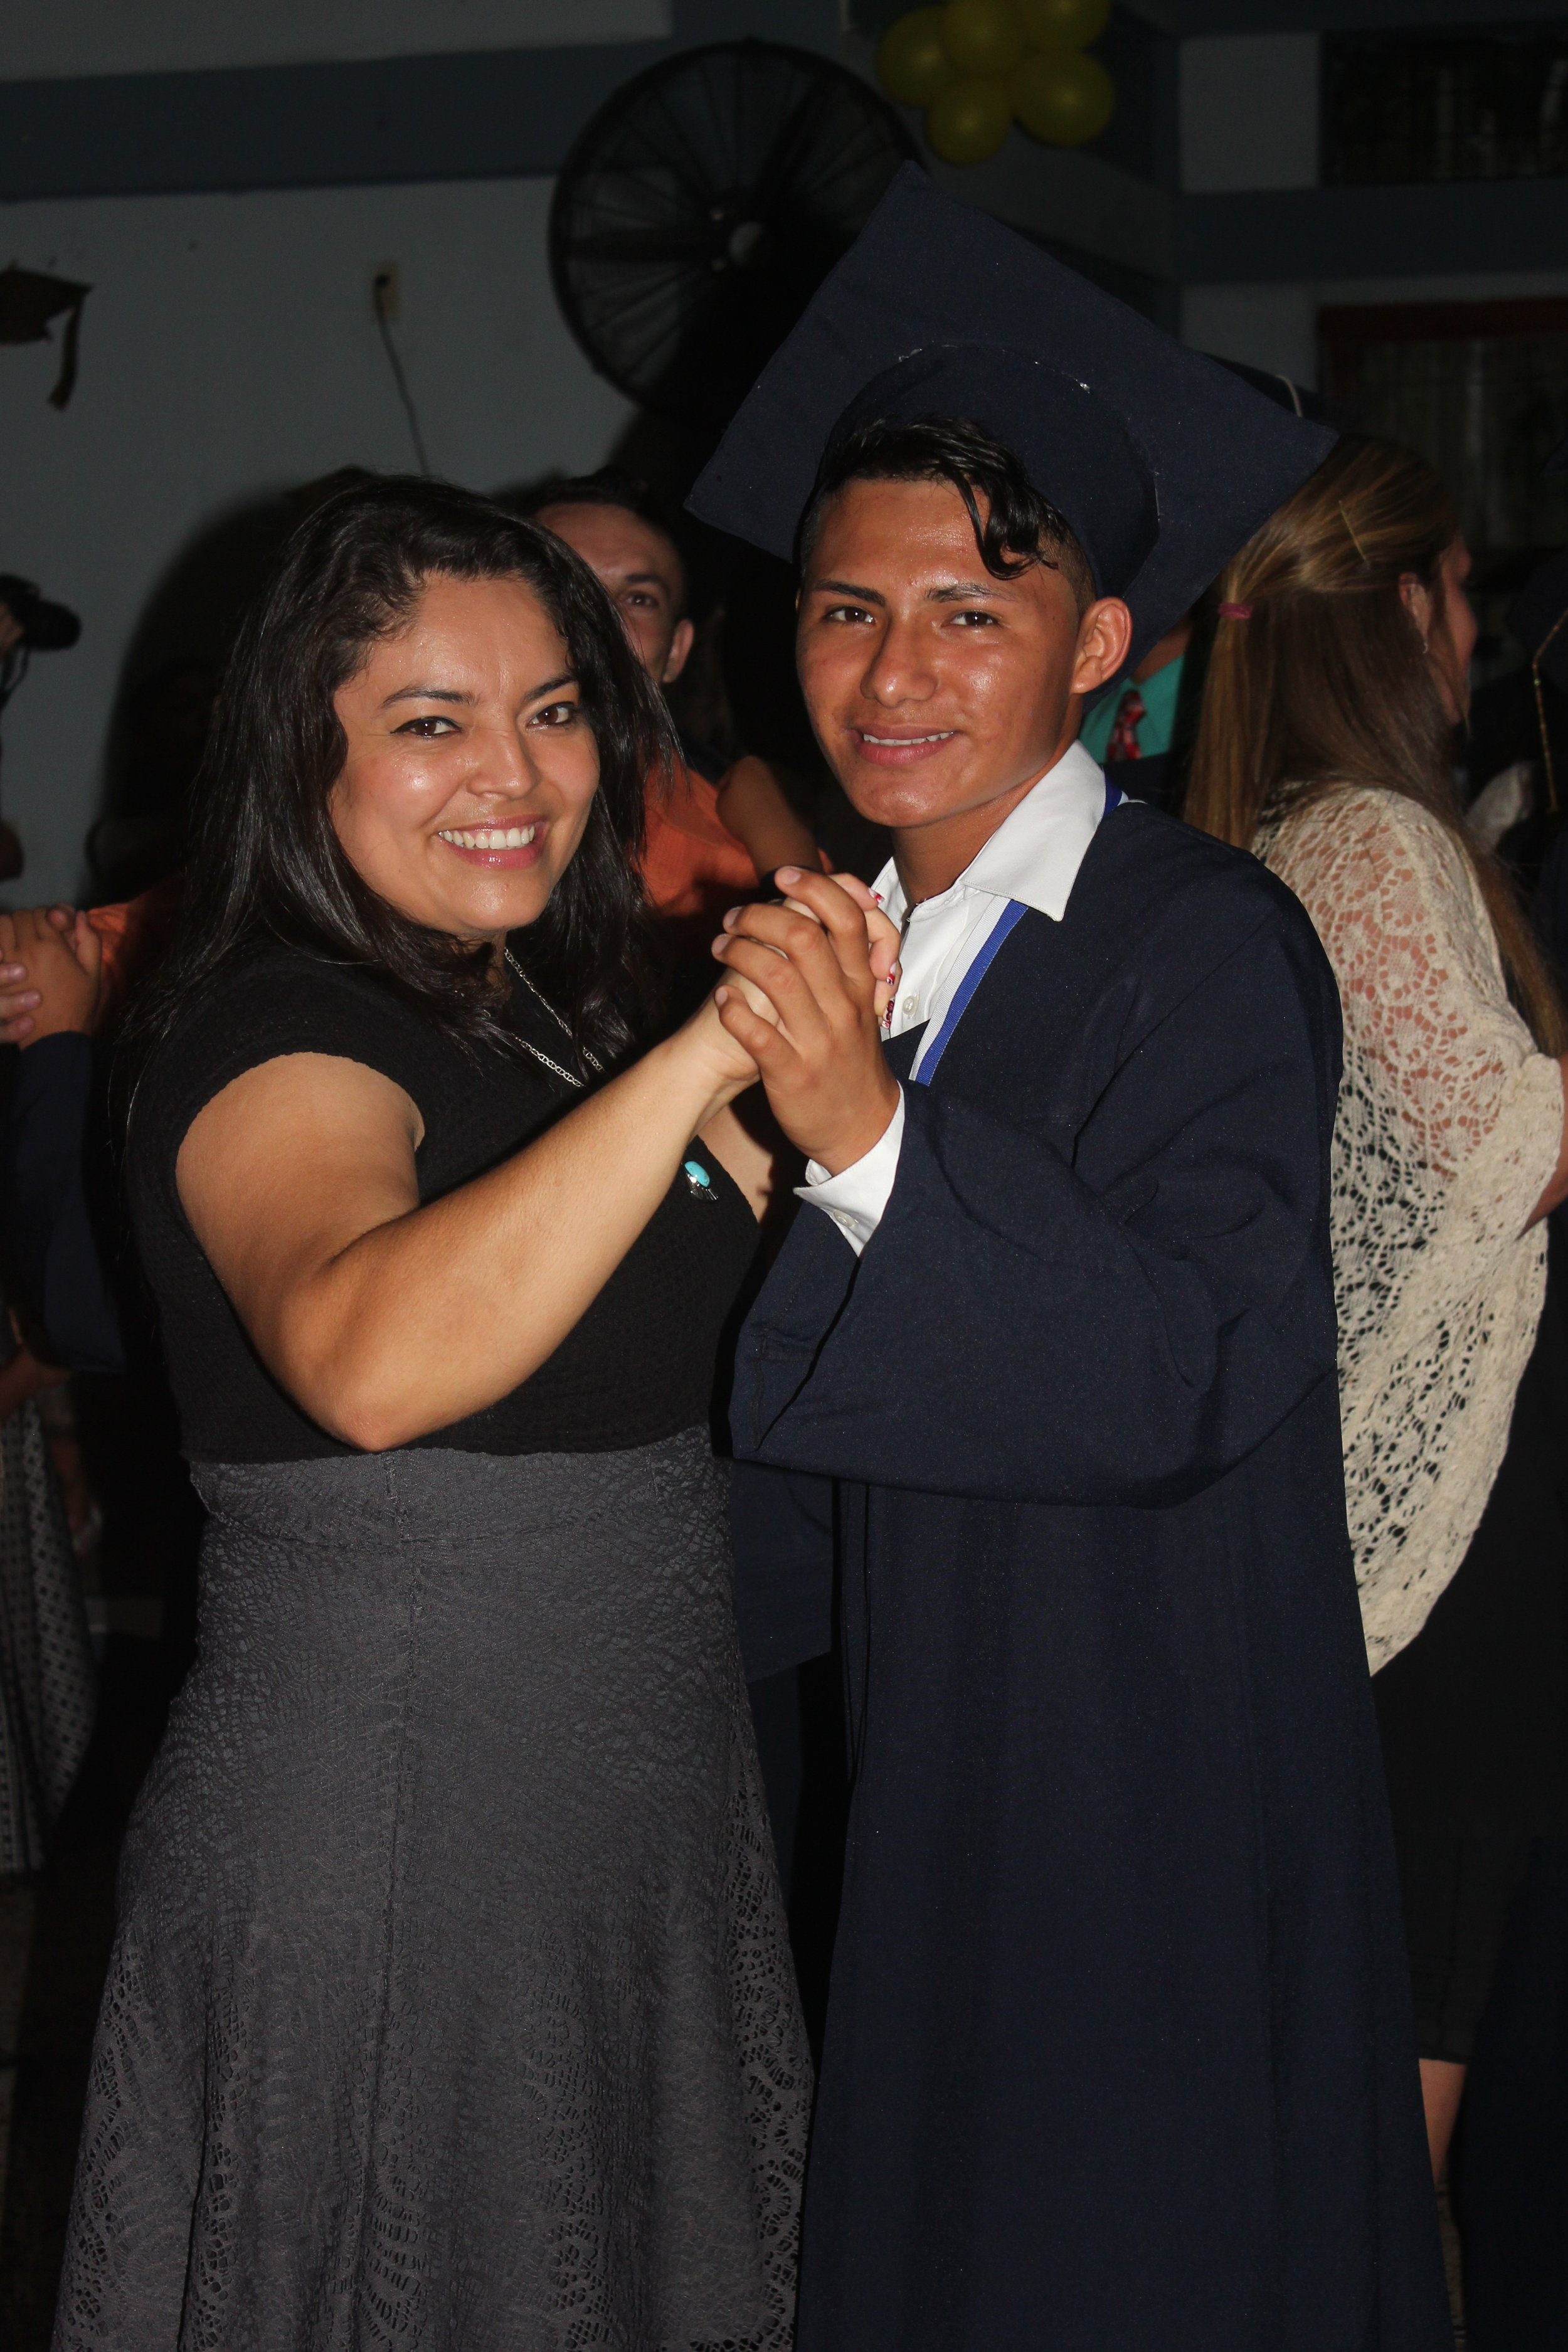 Vicente and his 'madrina' celebrating his graduation from 9th grade in December of 2016.